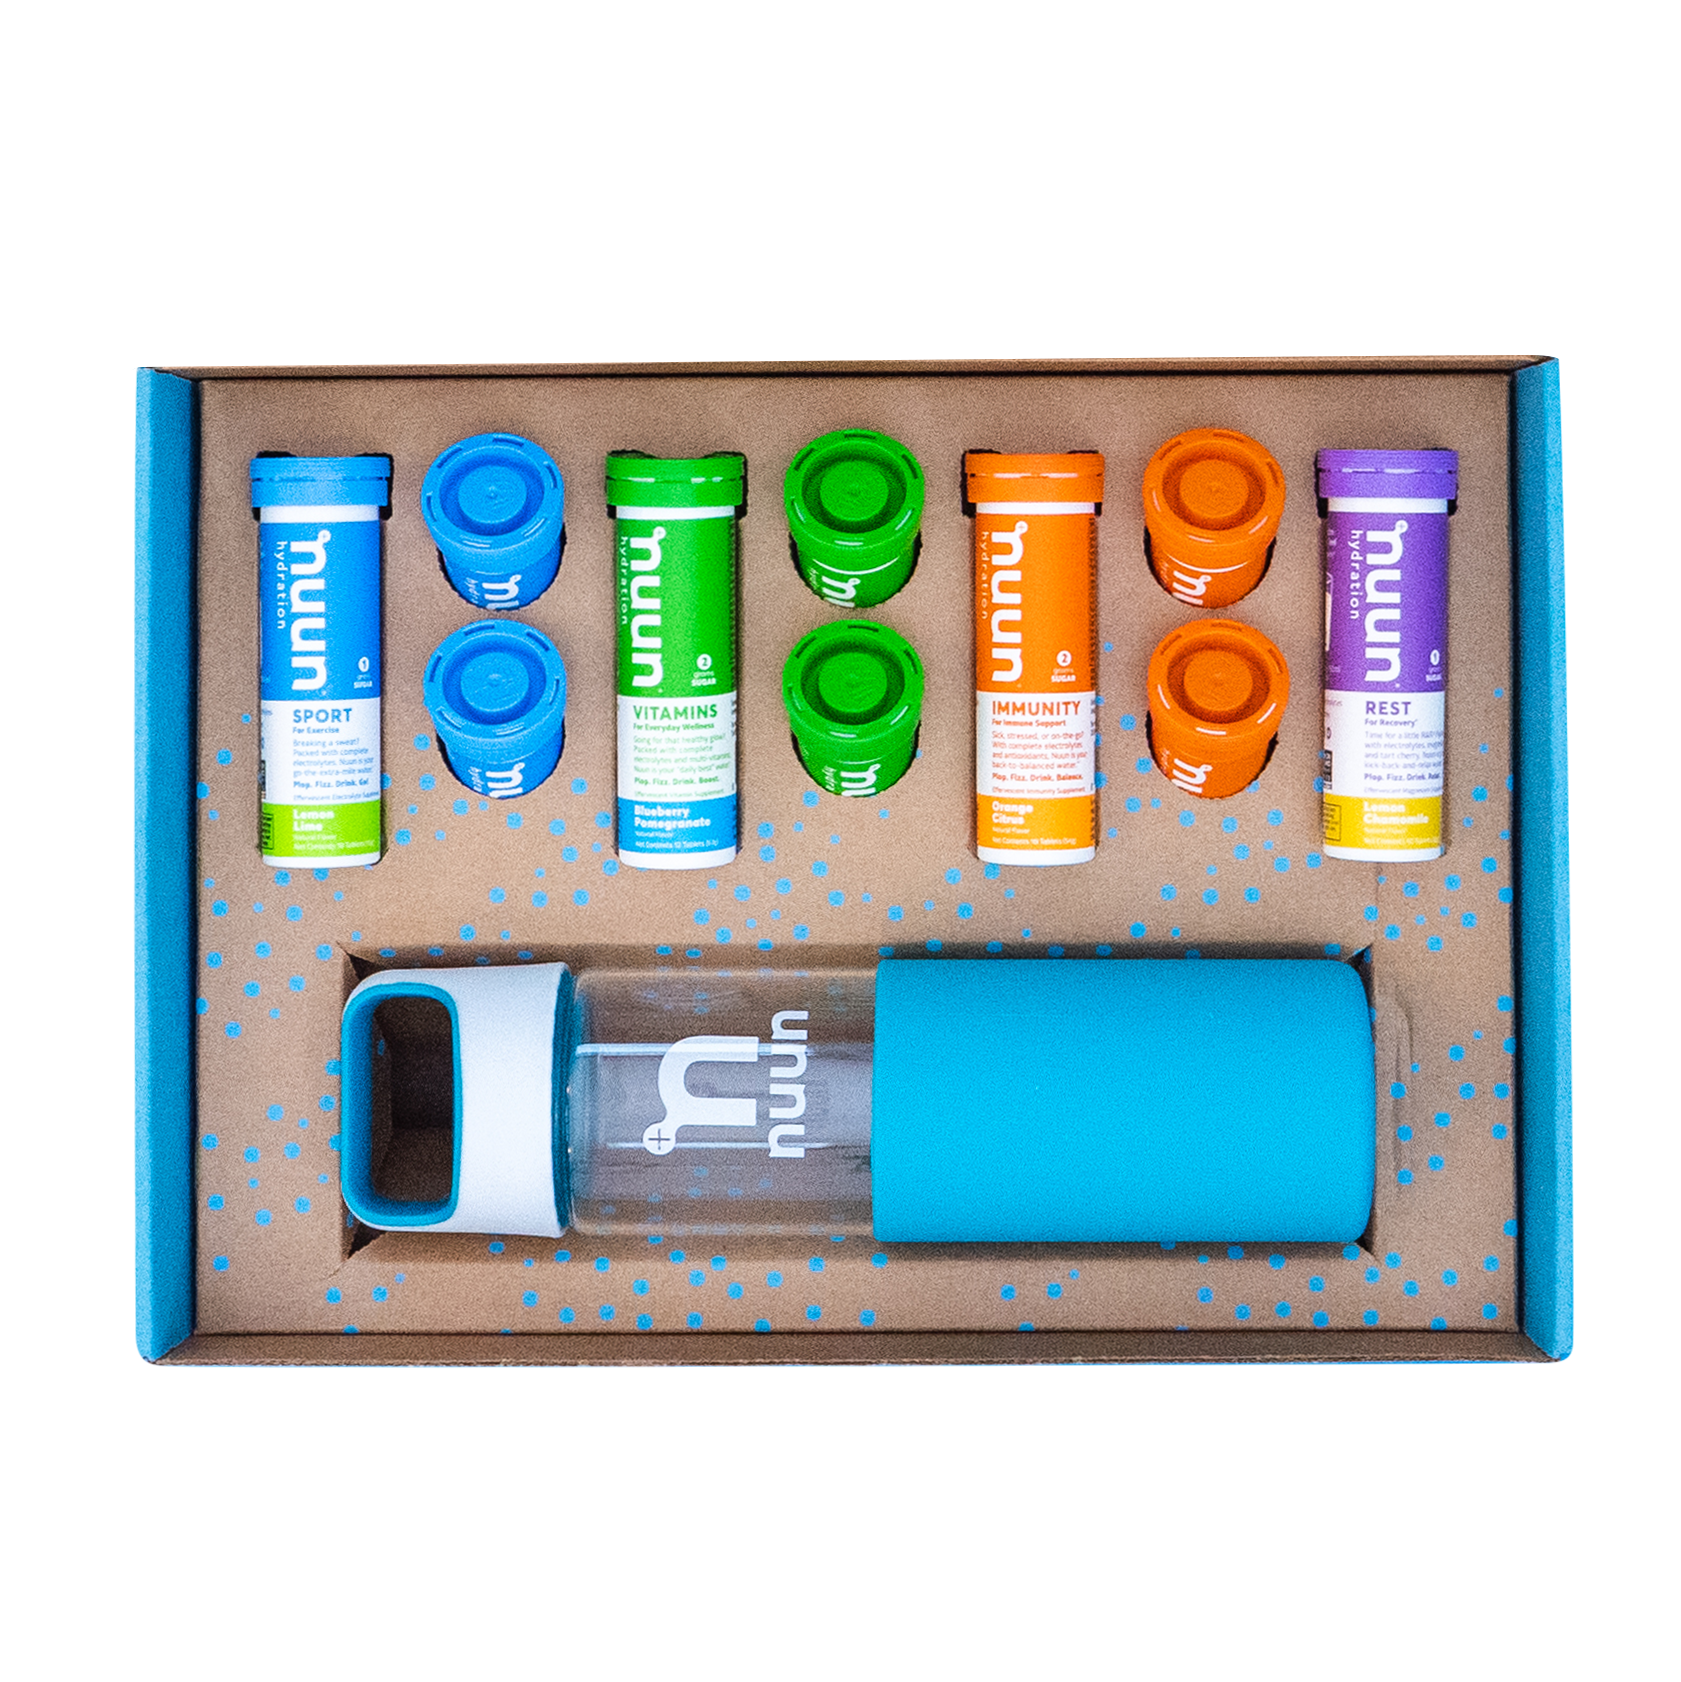 Nuun Hydration cardboard box with drink tube tablets and glass waterbottle